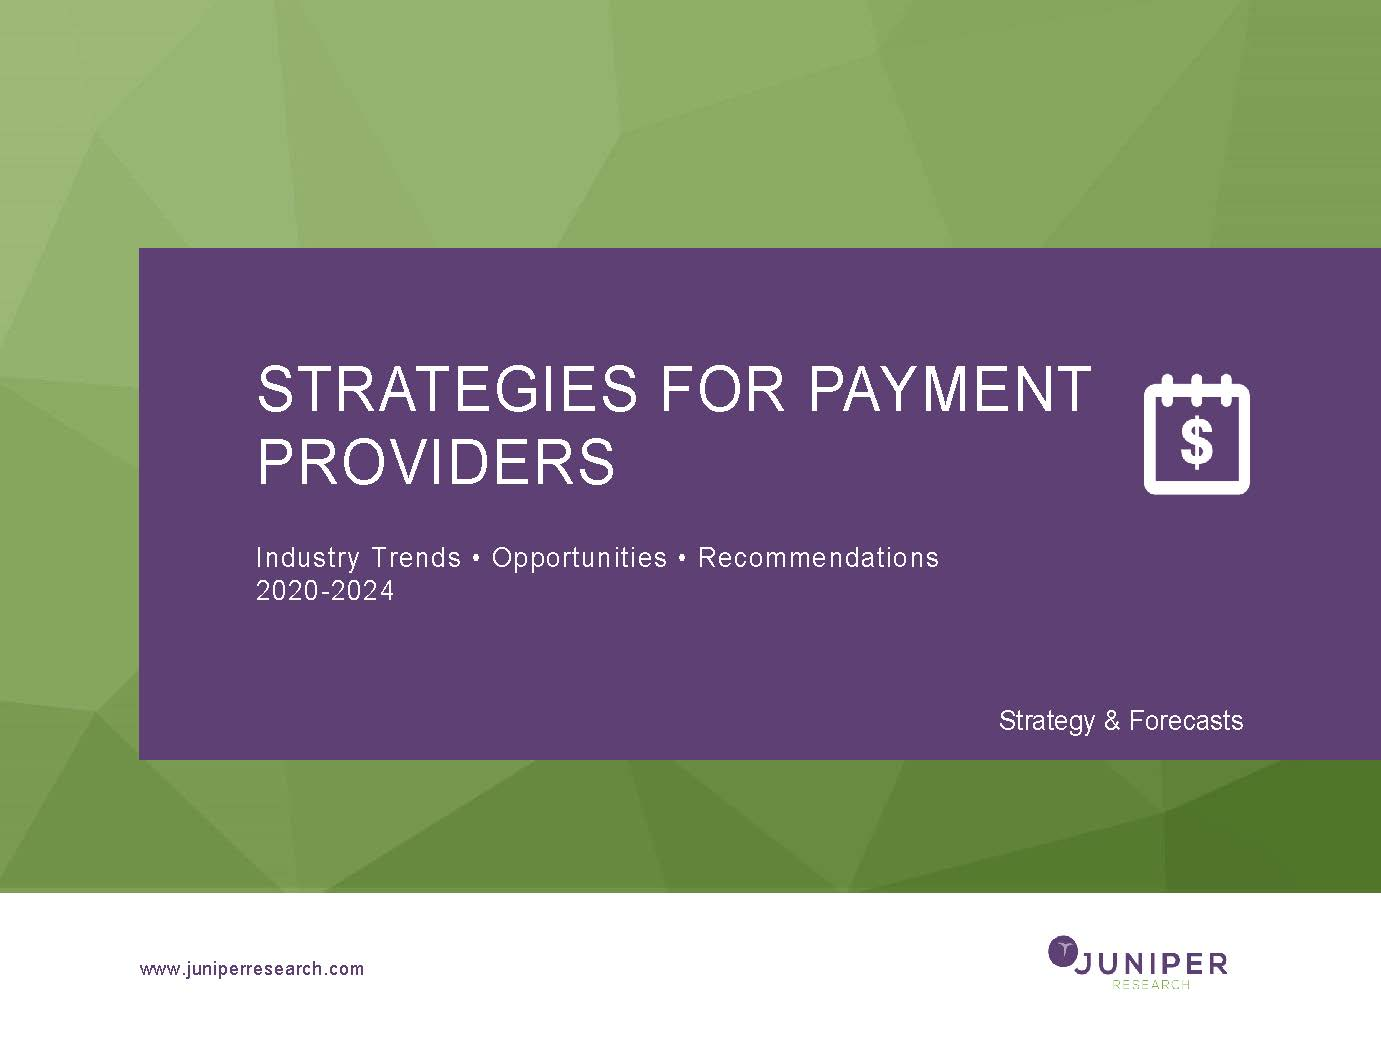 Strategies for Payment Providers